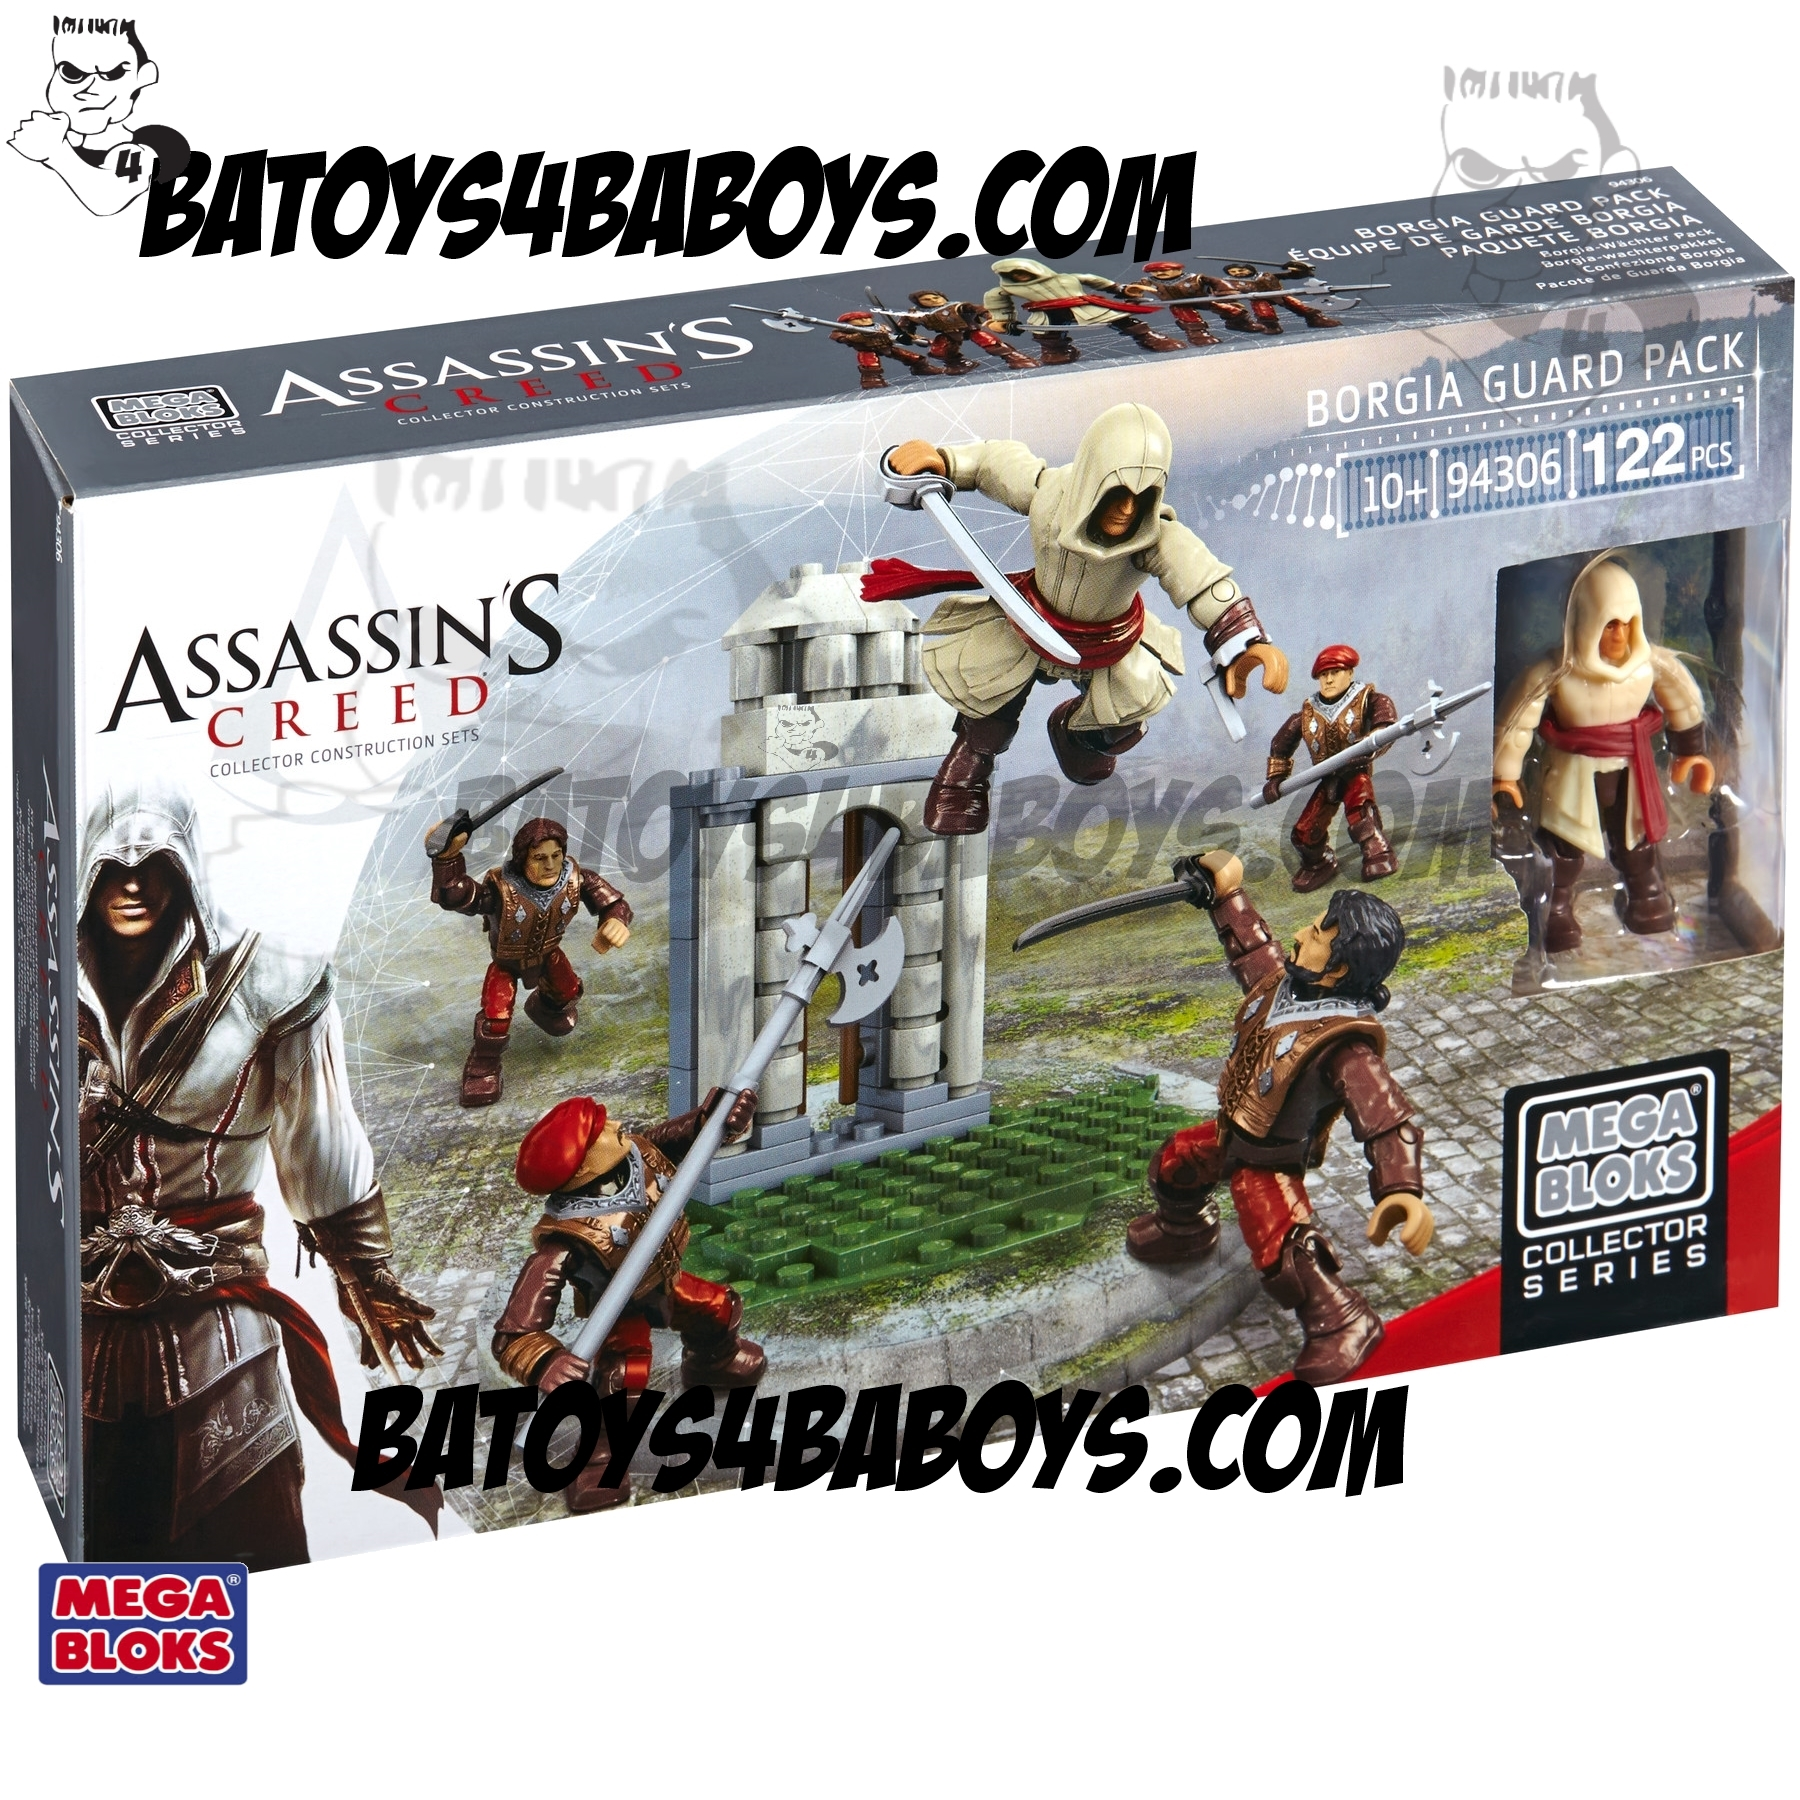 2014 Mega Bloks Assassin's Creed Borgia Guard [Faction Battlion Crew] Pack officially licensed Mega Bloks Assassin's Creed product at B.A. Toys.